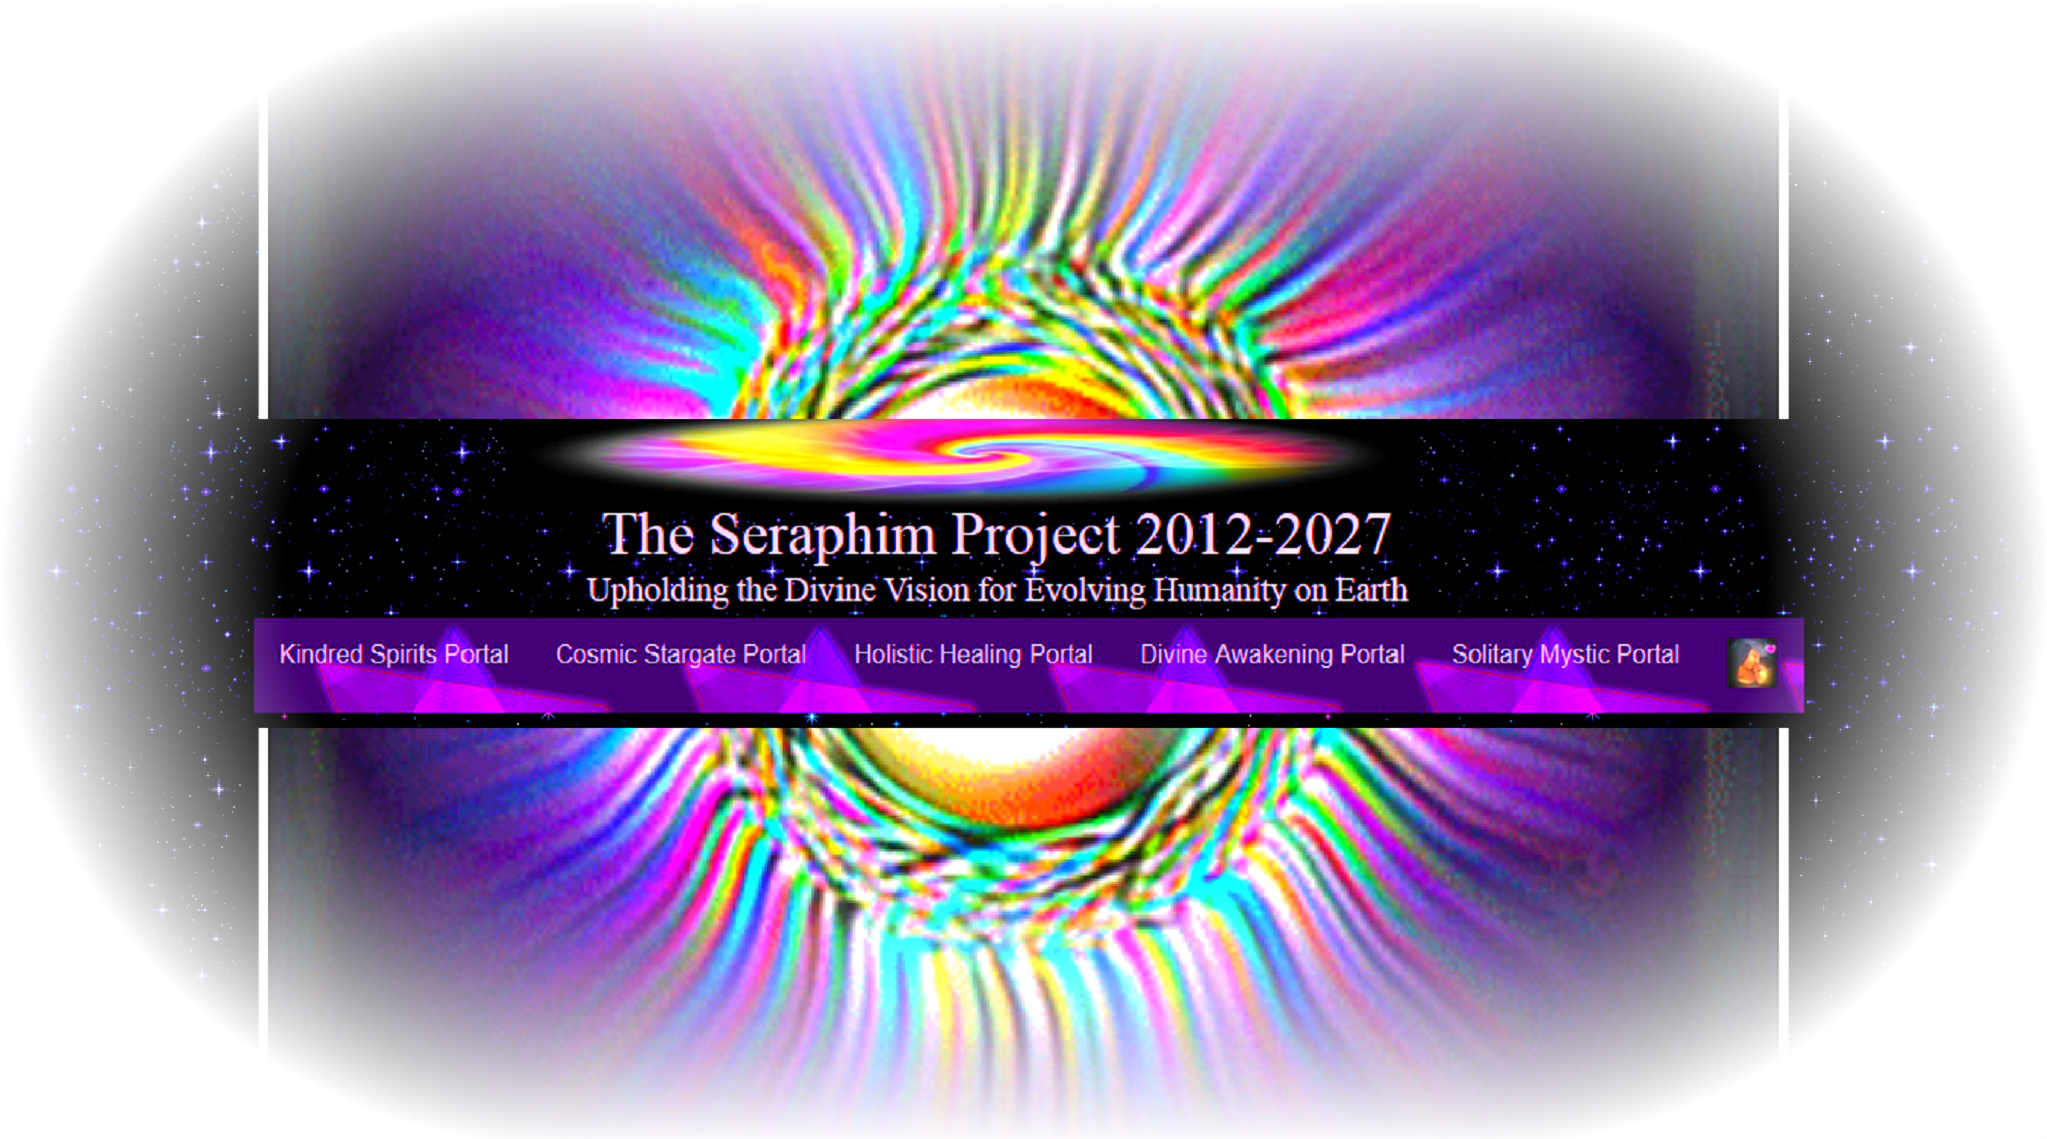 Kindred Spirits for The Seraphim Project 2012-2027</a><br> by <a href='/profile/Maria-Celeste-G-VelAja-TalaLei-/'>Maria Celeste G VelAja TalaLei </a>